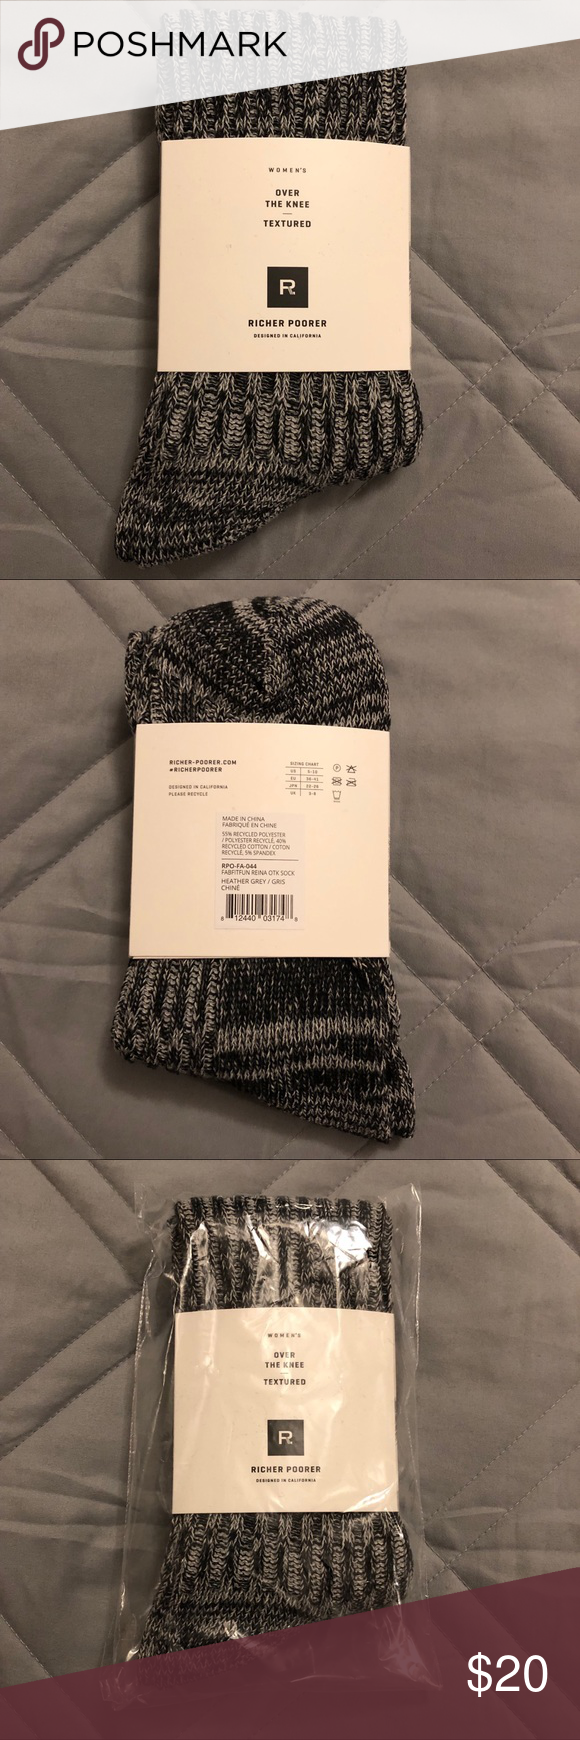 801e1565c Over The Knee Textured Sock Reina by Richer Poorer Brand new! Tags  attached! In original packaging! FabFitFun Box Winter 2018!